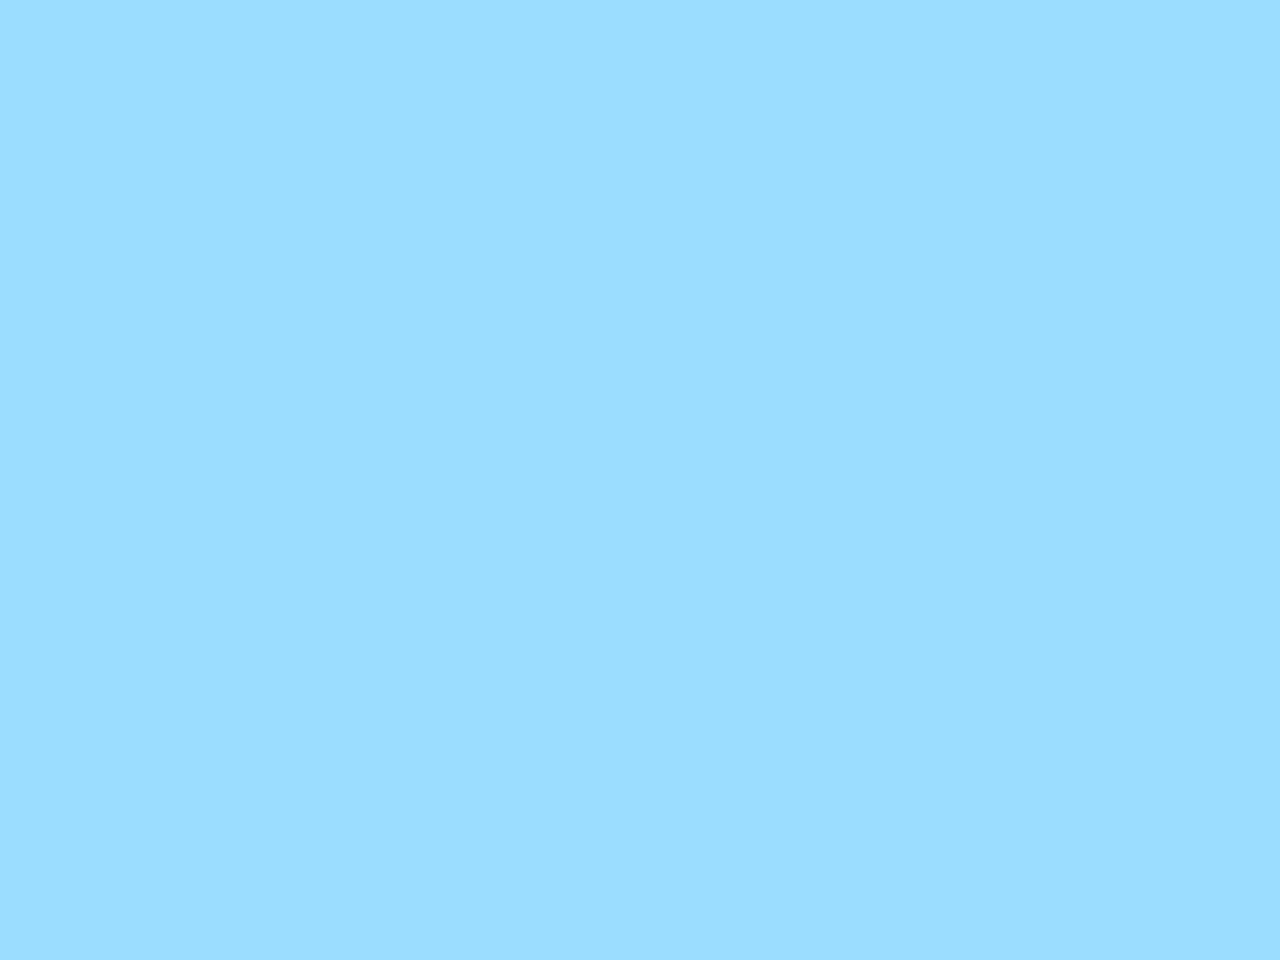 1280x960 Columbia Blue Solid Color Background